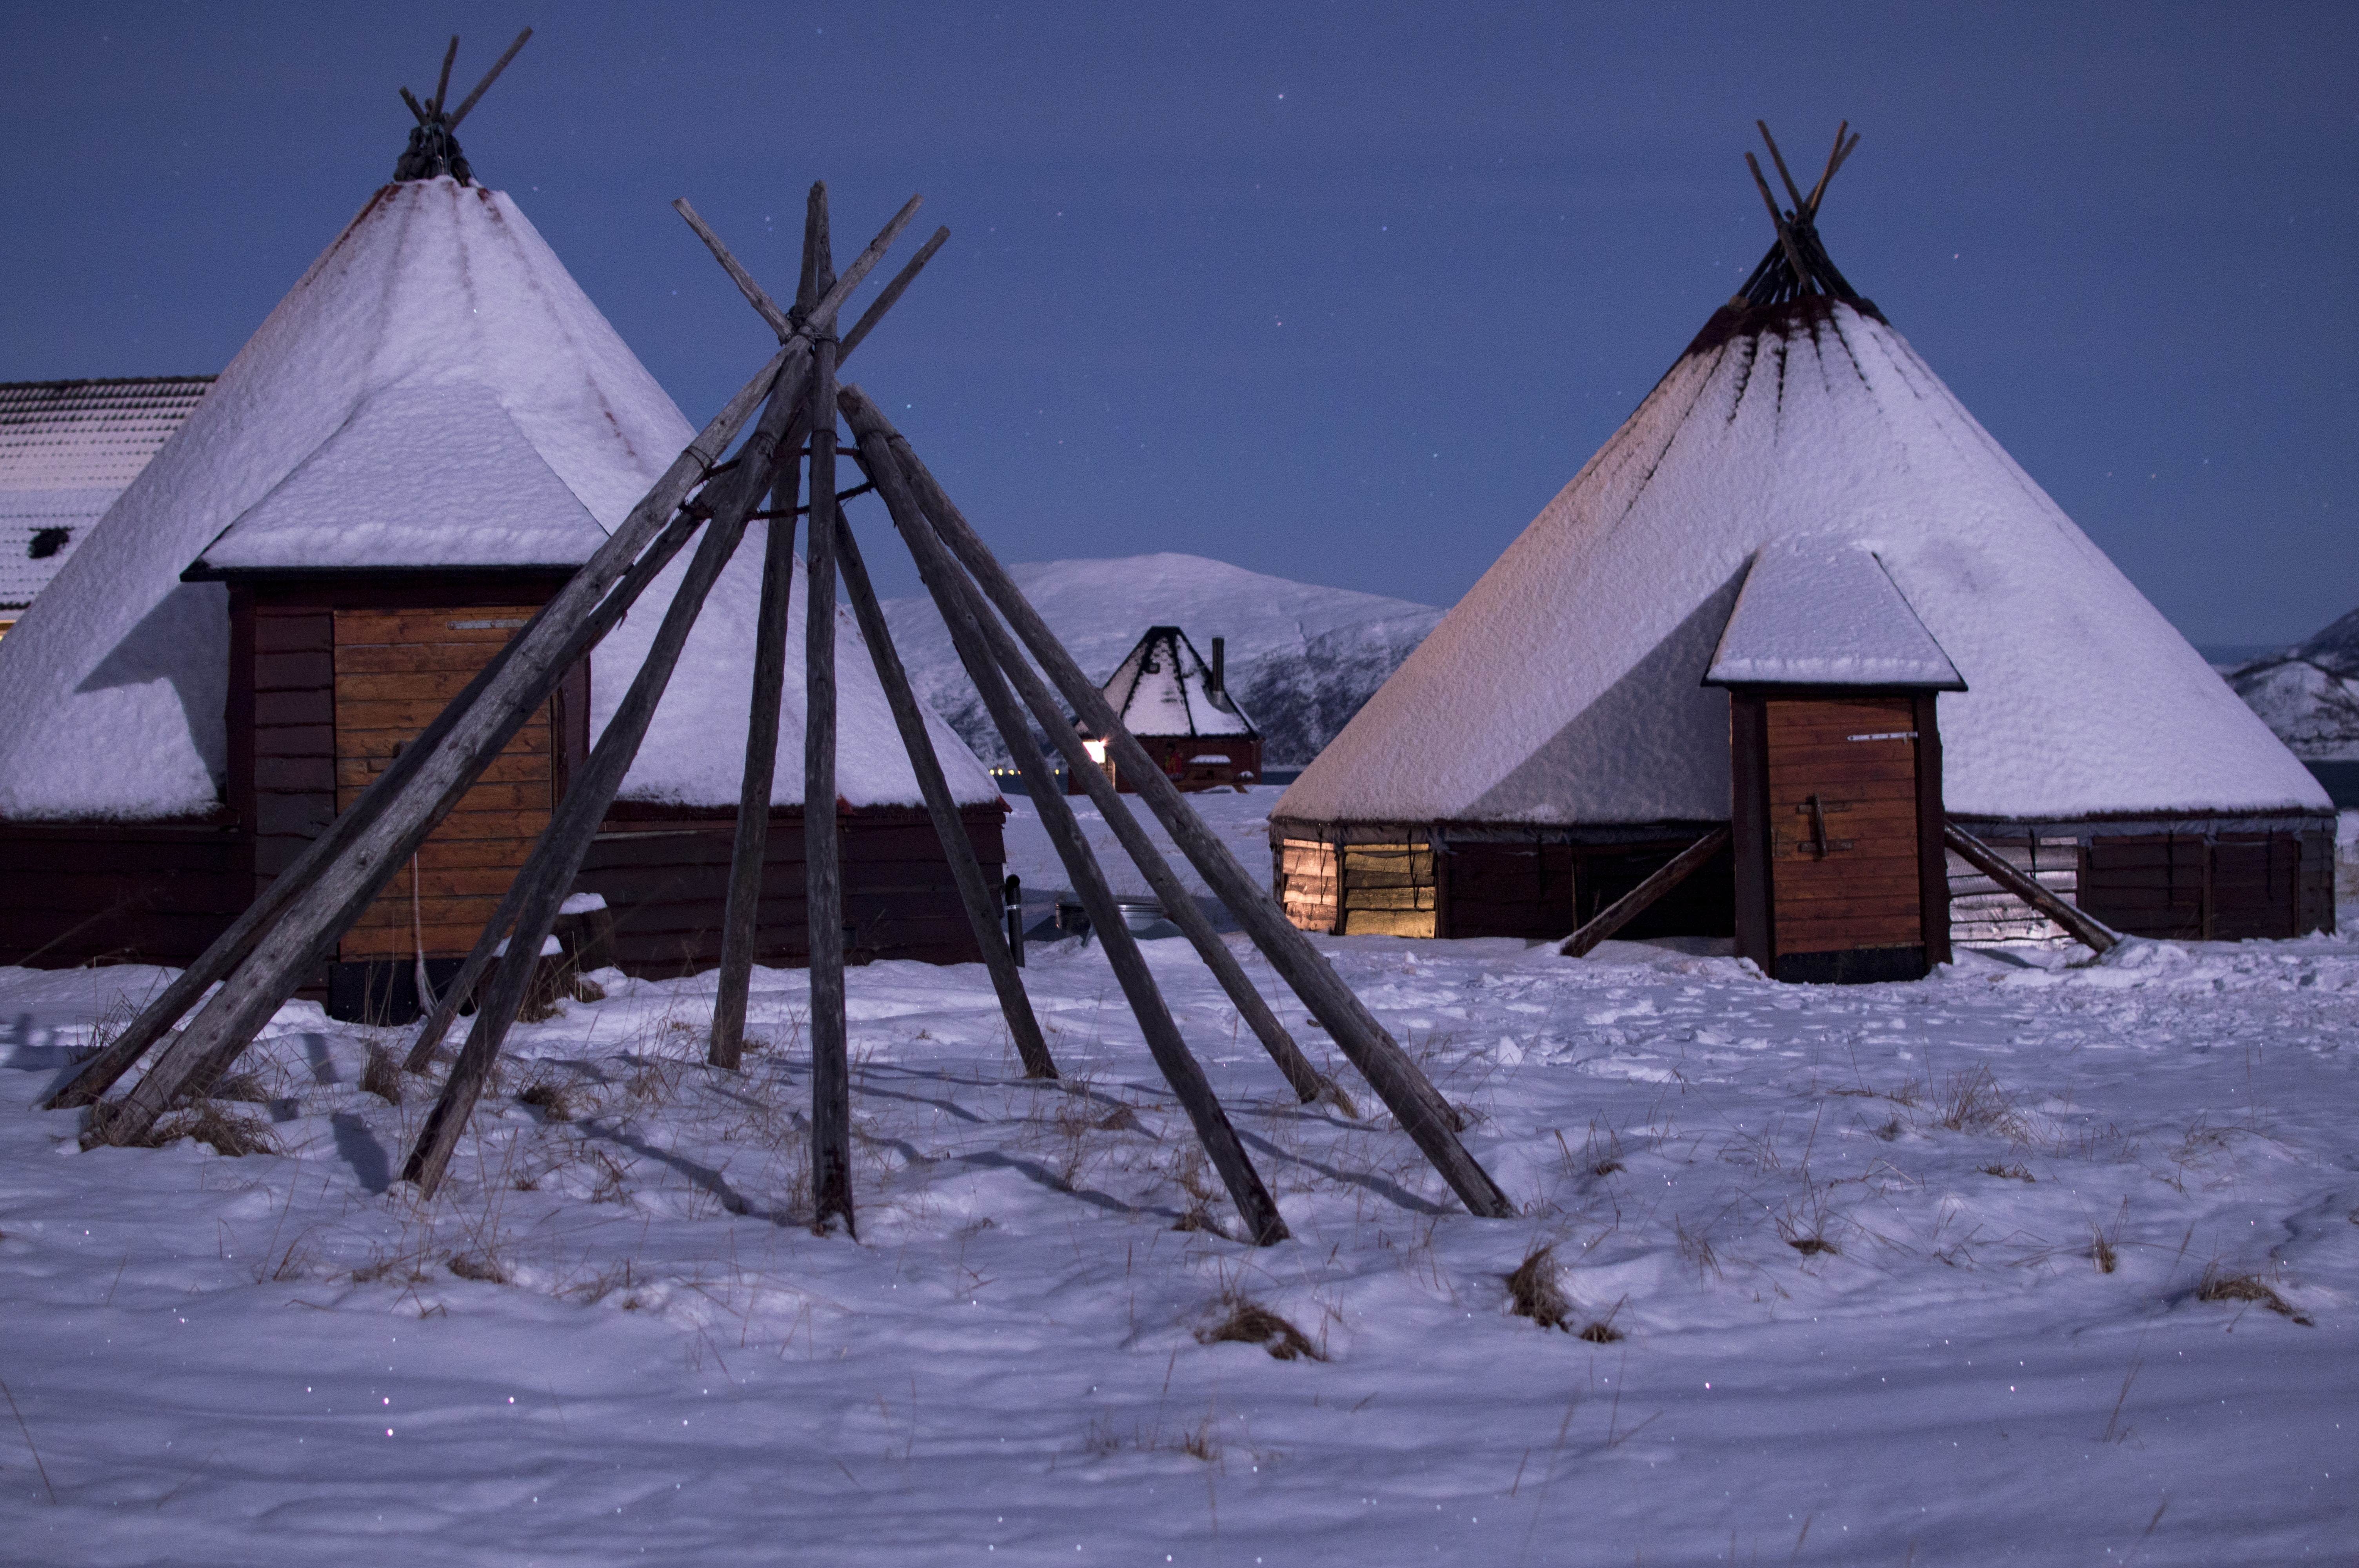 two white tents on winter